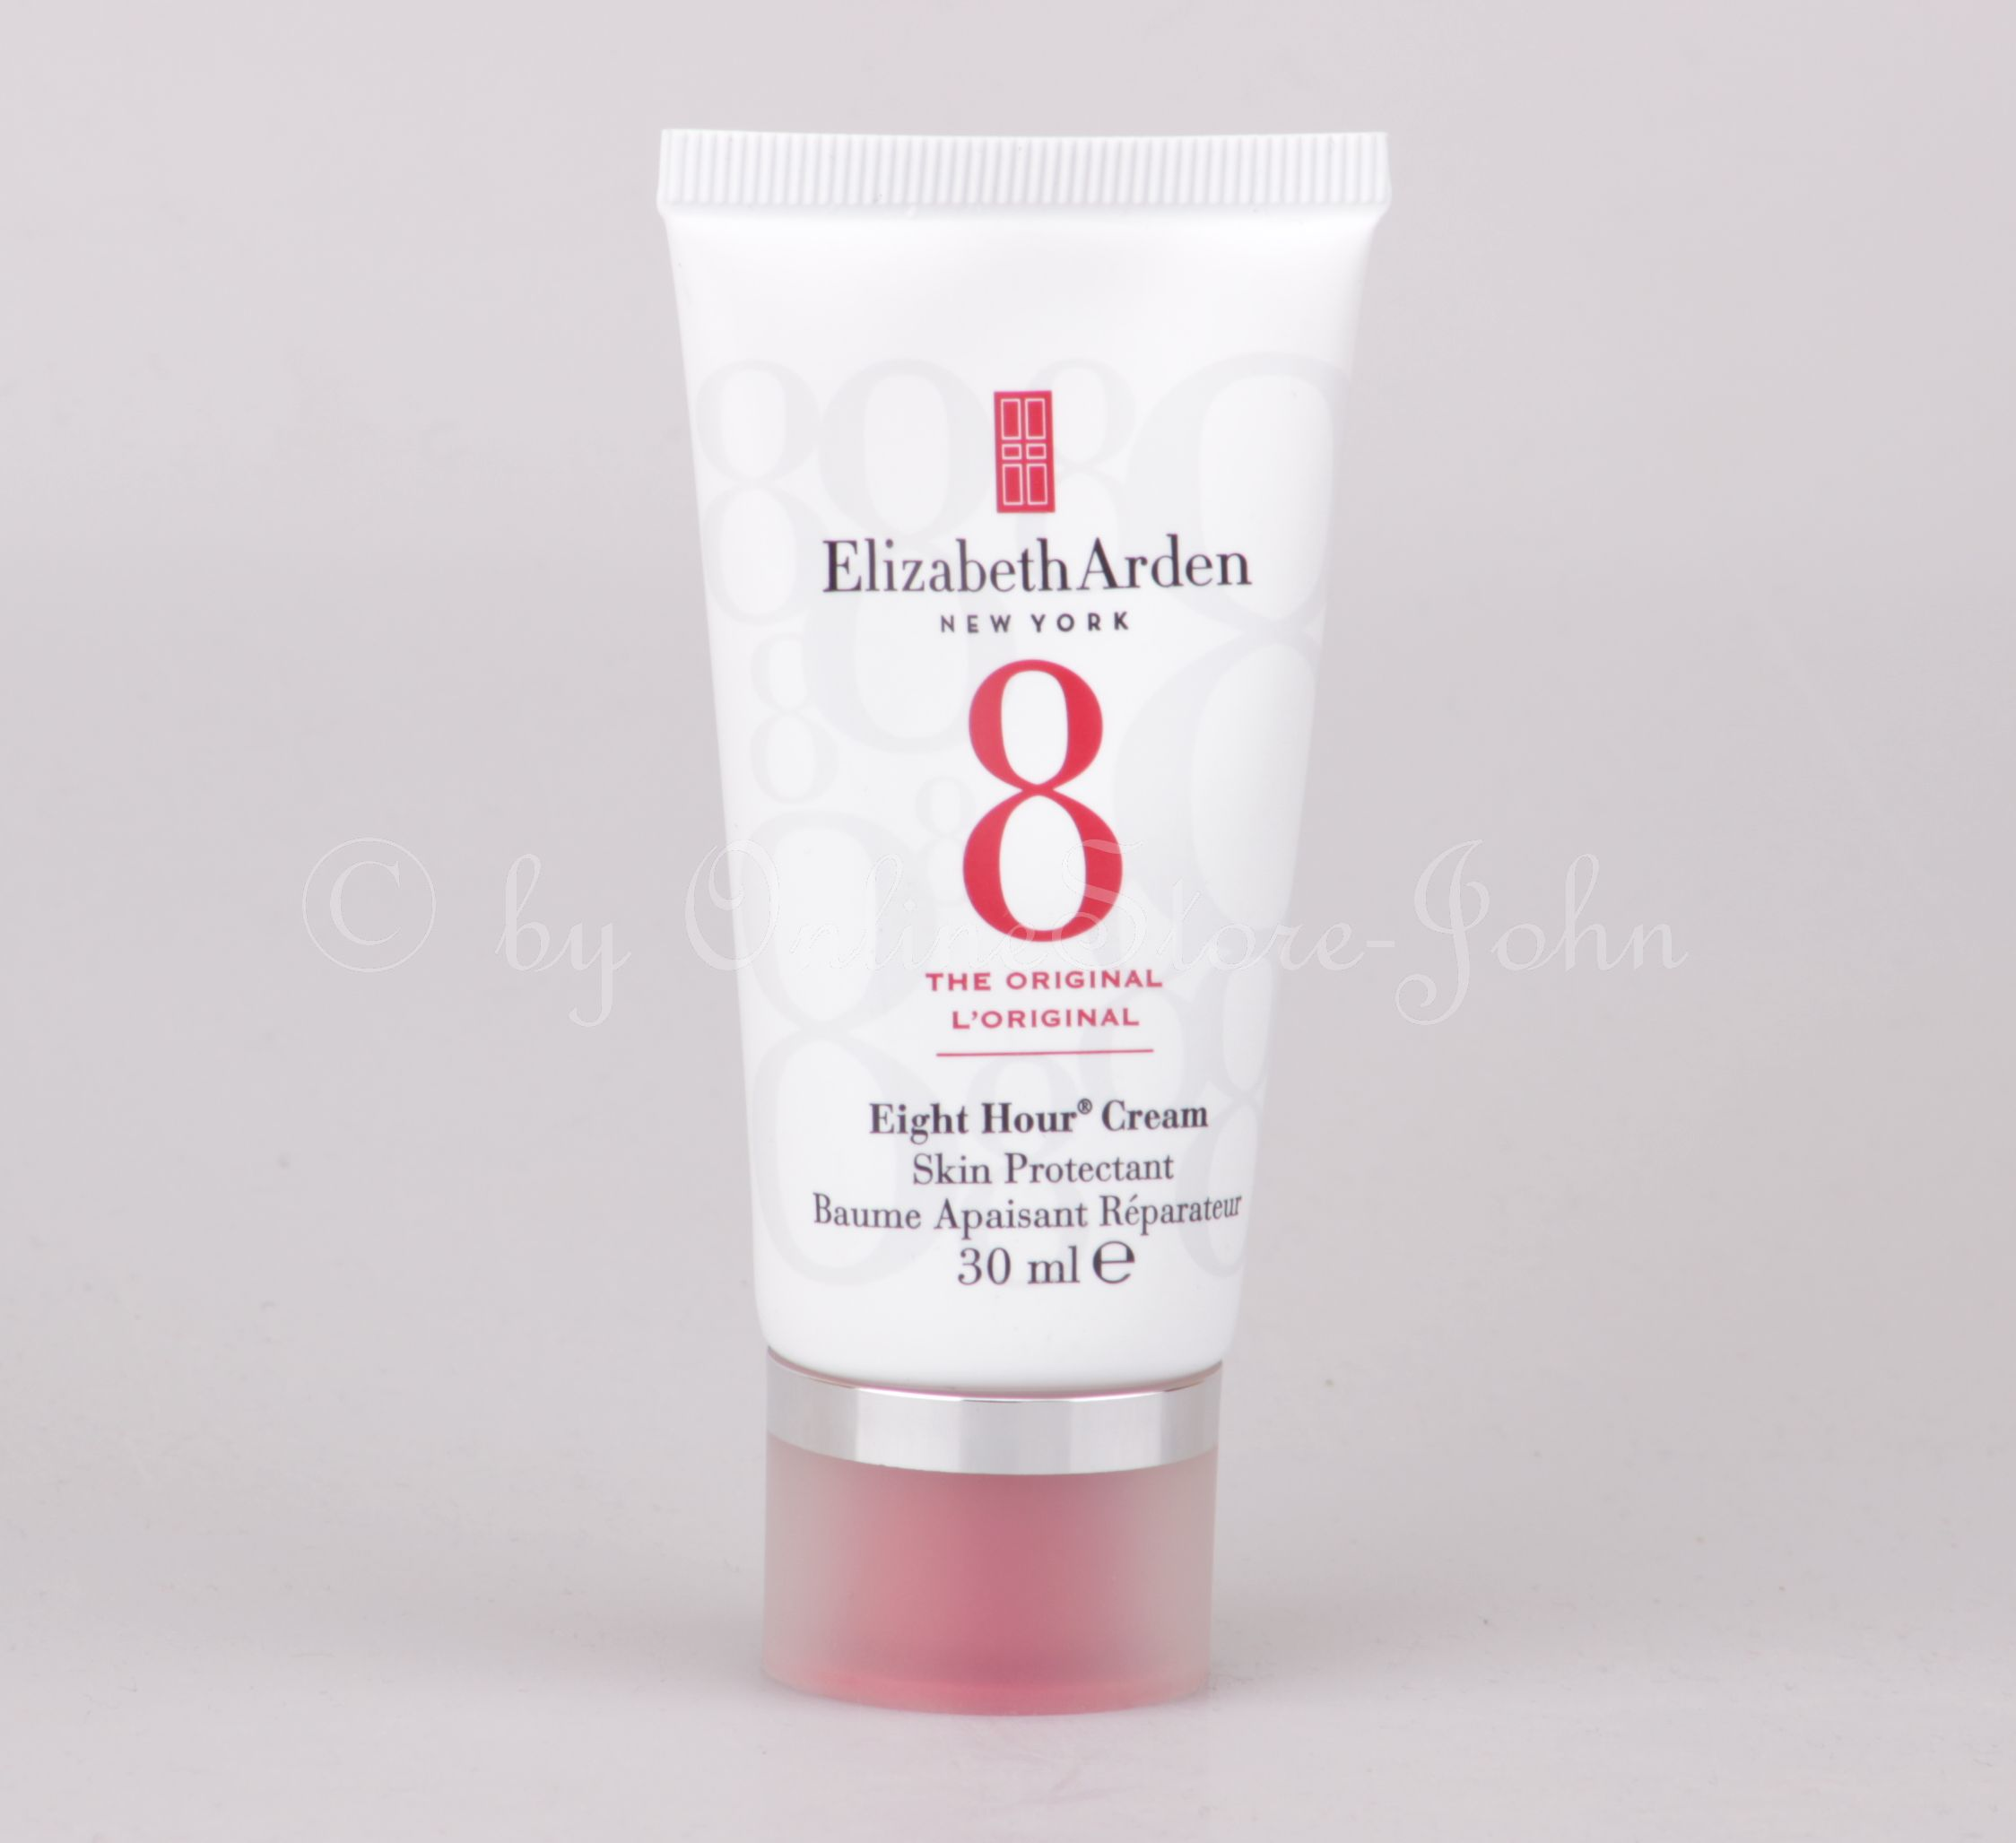 e770ec24f1c Elizabeth Arden - Eight Hour Cream - Skin Protectant 30ml